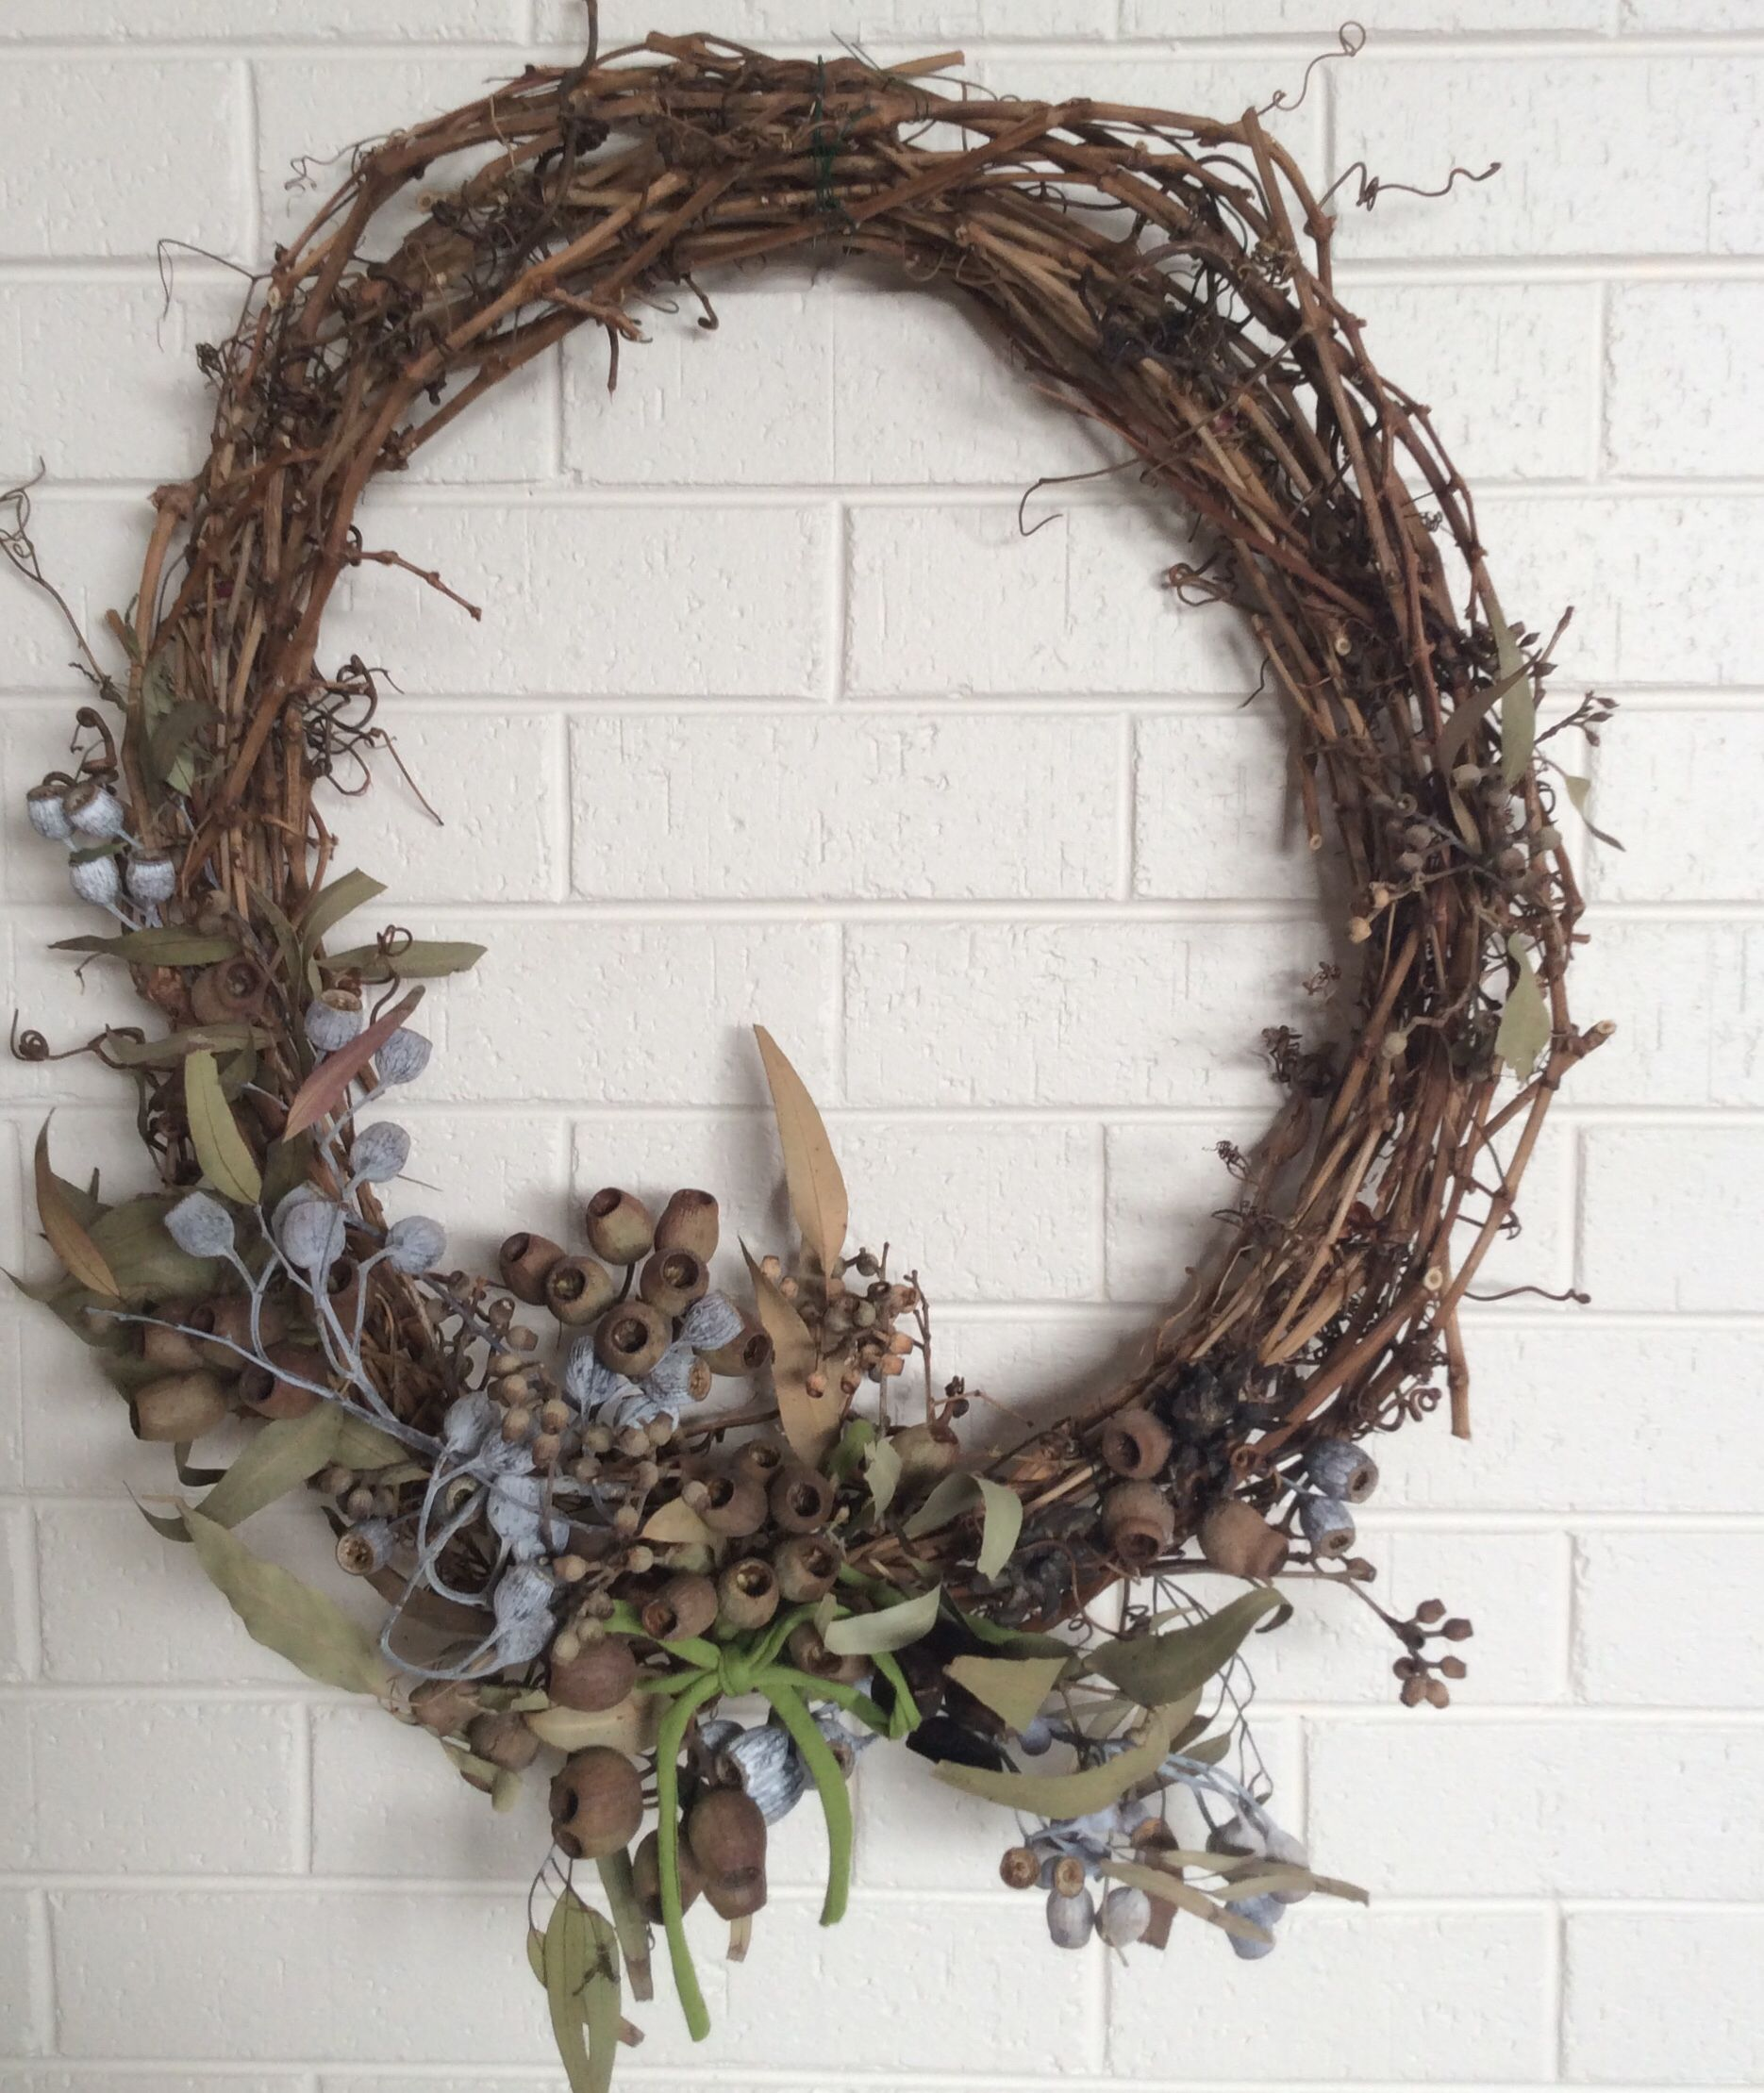 My attempt at a diy australian gum nut wreath for Christmas